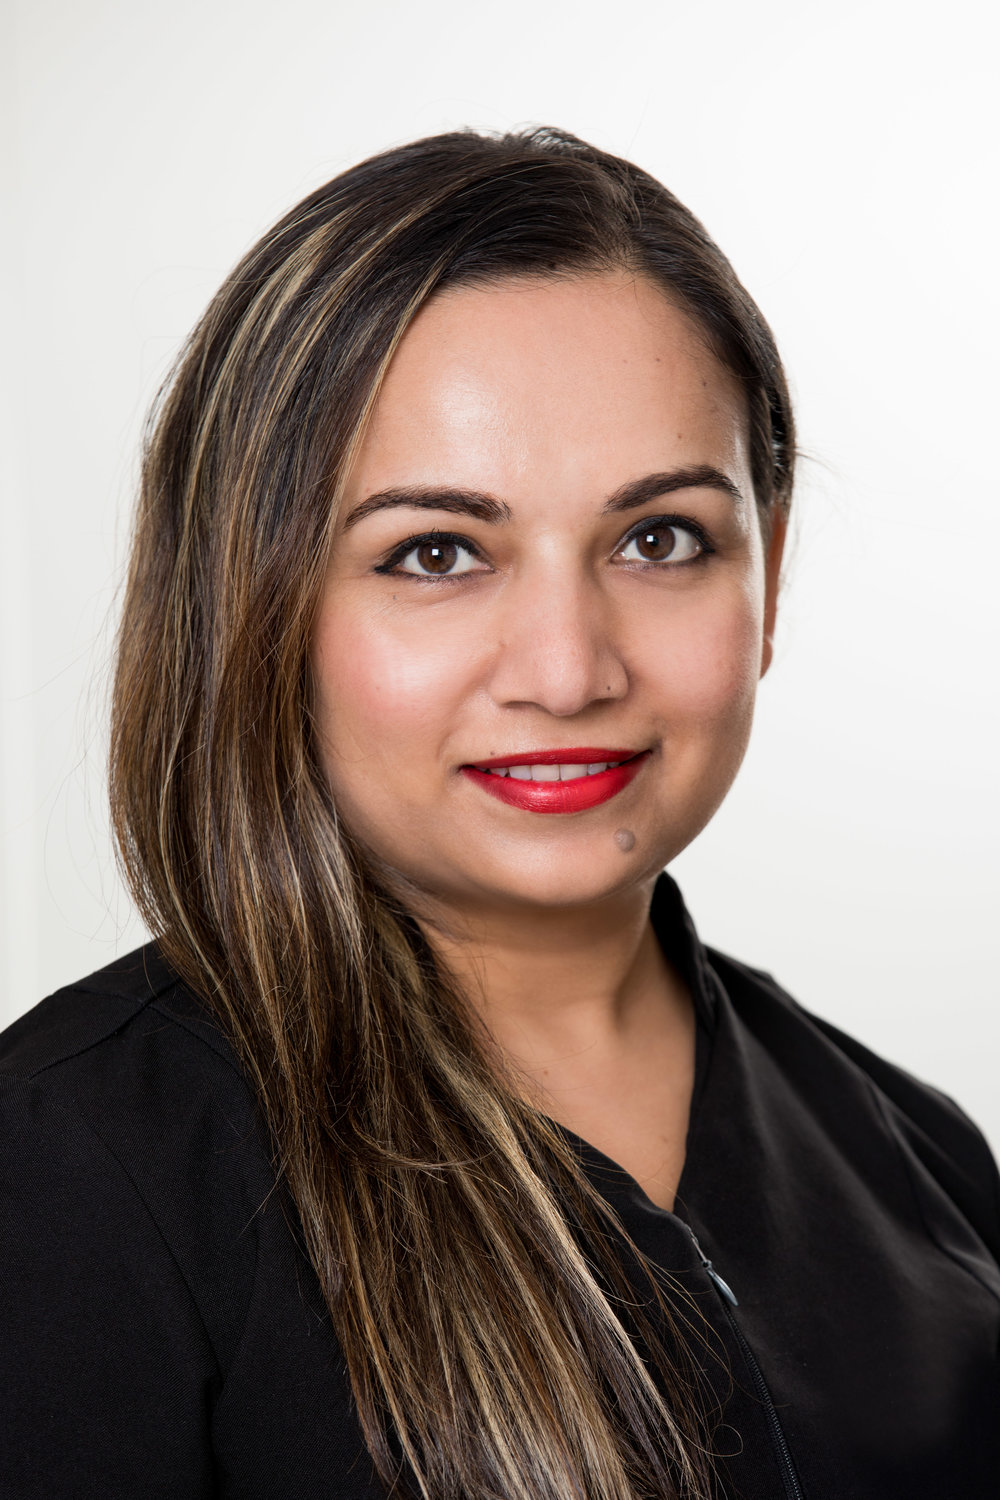 SAMJHANA - Senior AestheticianI graduated in 2004 at the prestigious Joyce Blok beauty therapy school and began my career at a top end salon in Manukau. After five years working and gaining experience, I moved to Australia and further developed my knowledge of beauty etiquette and advanced skin treatment. I spent seven years polishing my skills and then returned home to New Zealand and started working with a specialist laser clinic. Though I enjoyed the work, I realised my passion truly lies in the therapeutic side of beauty. Here I am now at Bloom, looking forward to helping our clients achieve their beauty goals. So whether it's a simple brow shape or an advanced treatment, trust that you will be in very safe, knowledgeable and caring hands.